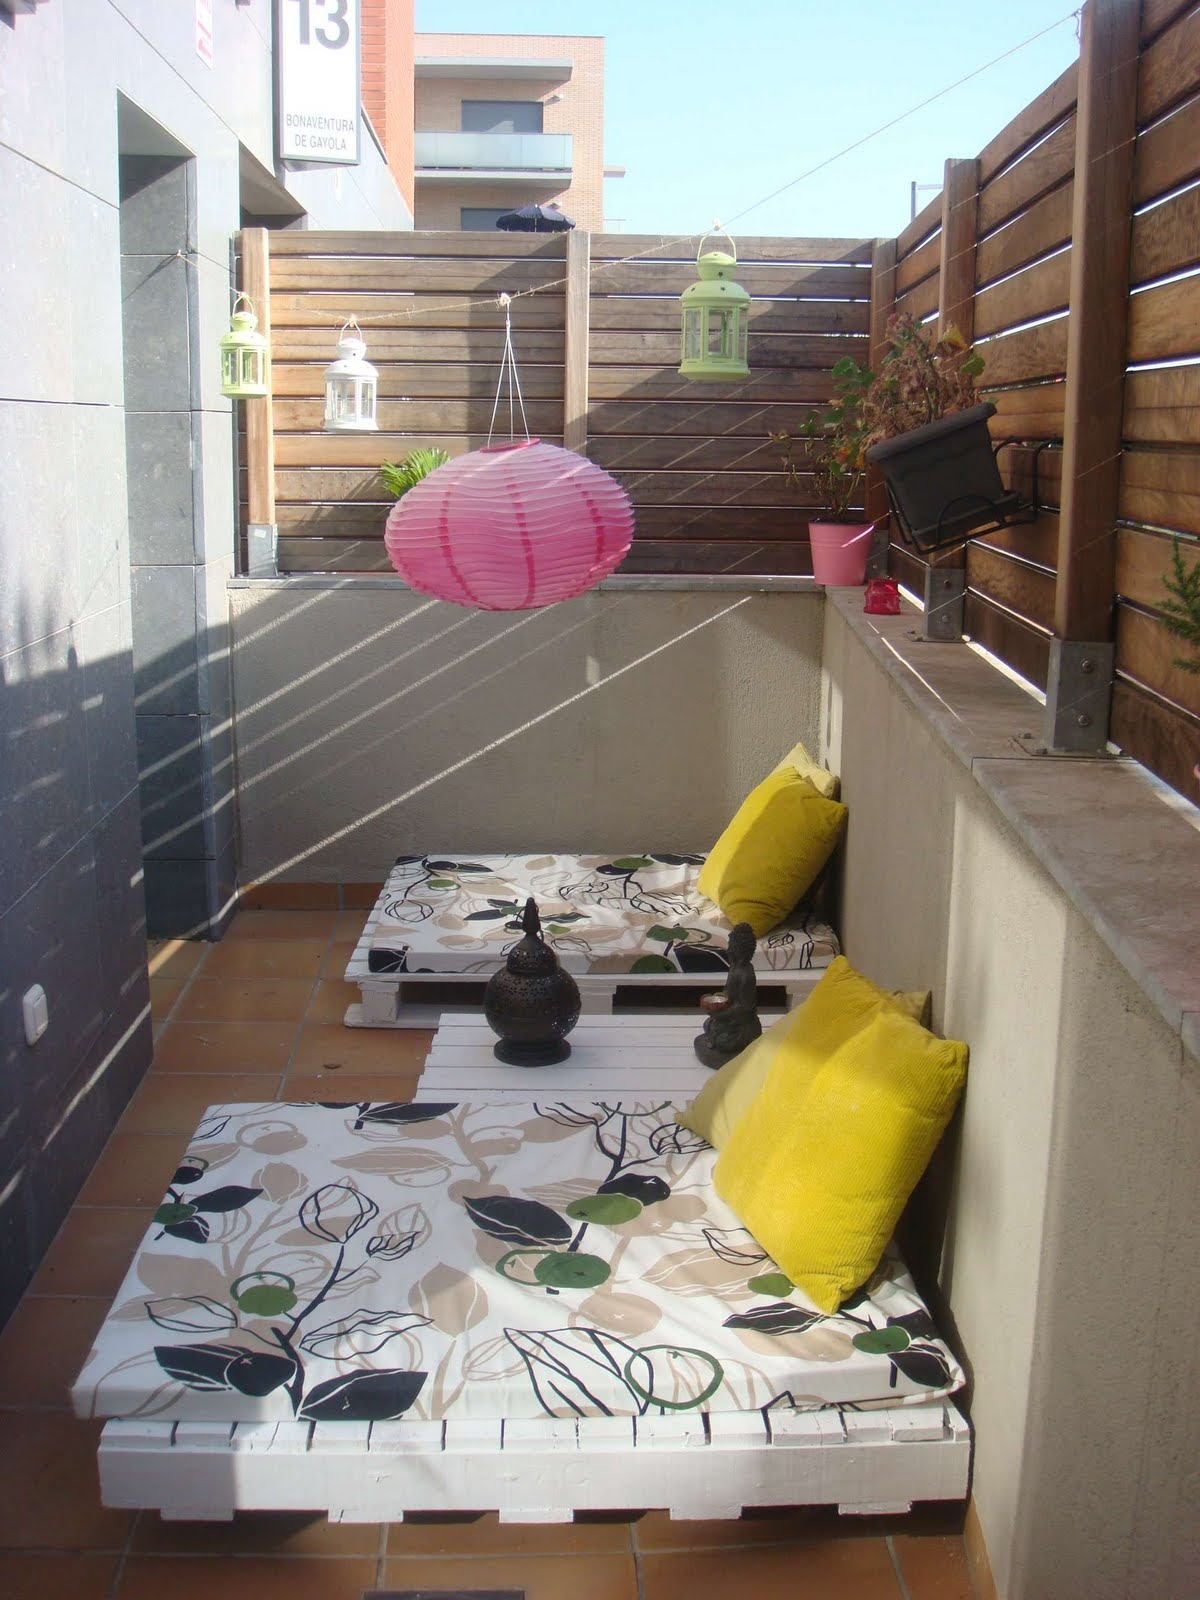 La terraza de palets de chill out - Terrazas chill out ...